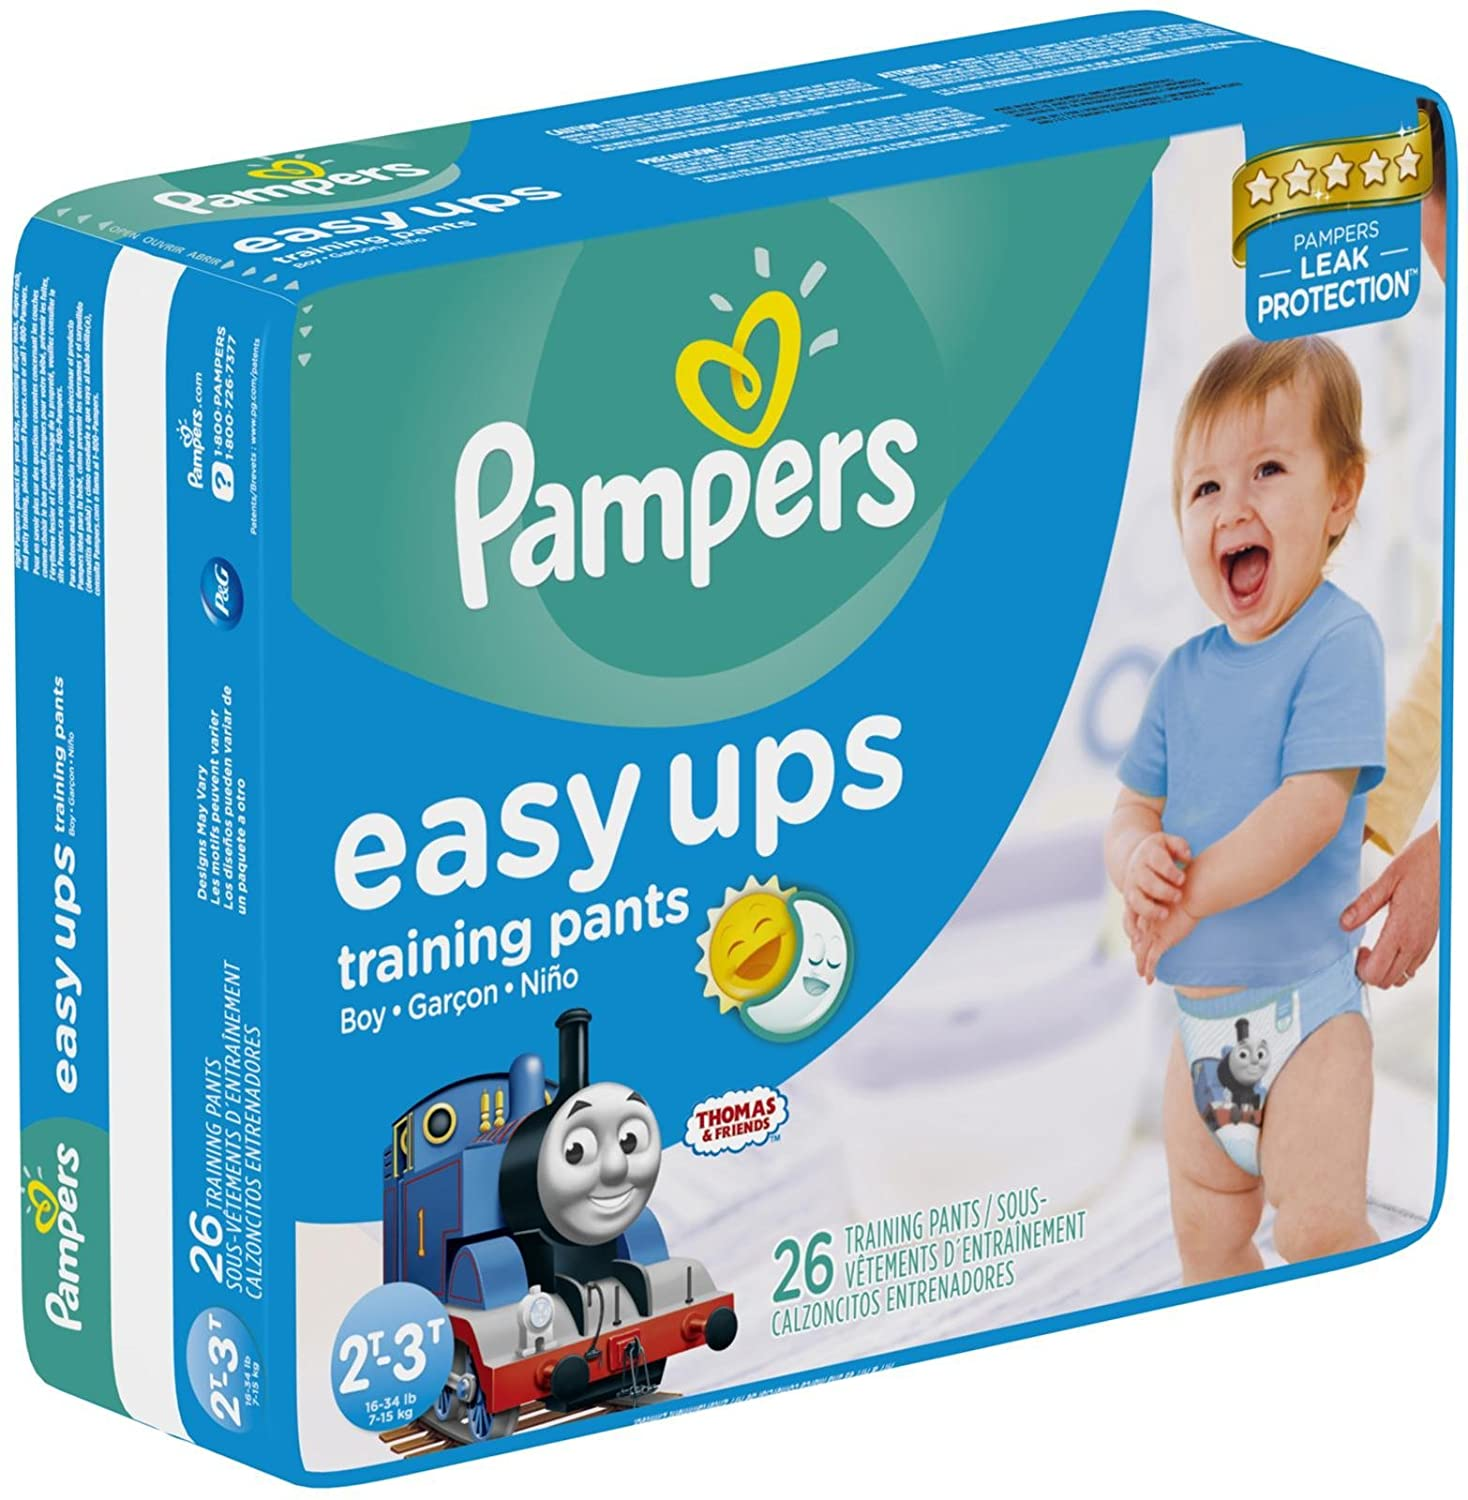 Pampers Easy-Ups Training Pants - Boys - 2T-3T - 26 ct Procter & Gamble